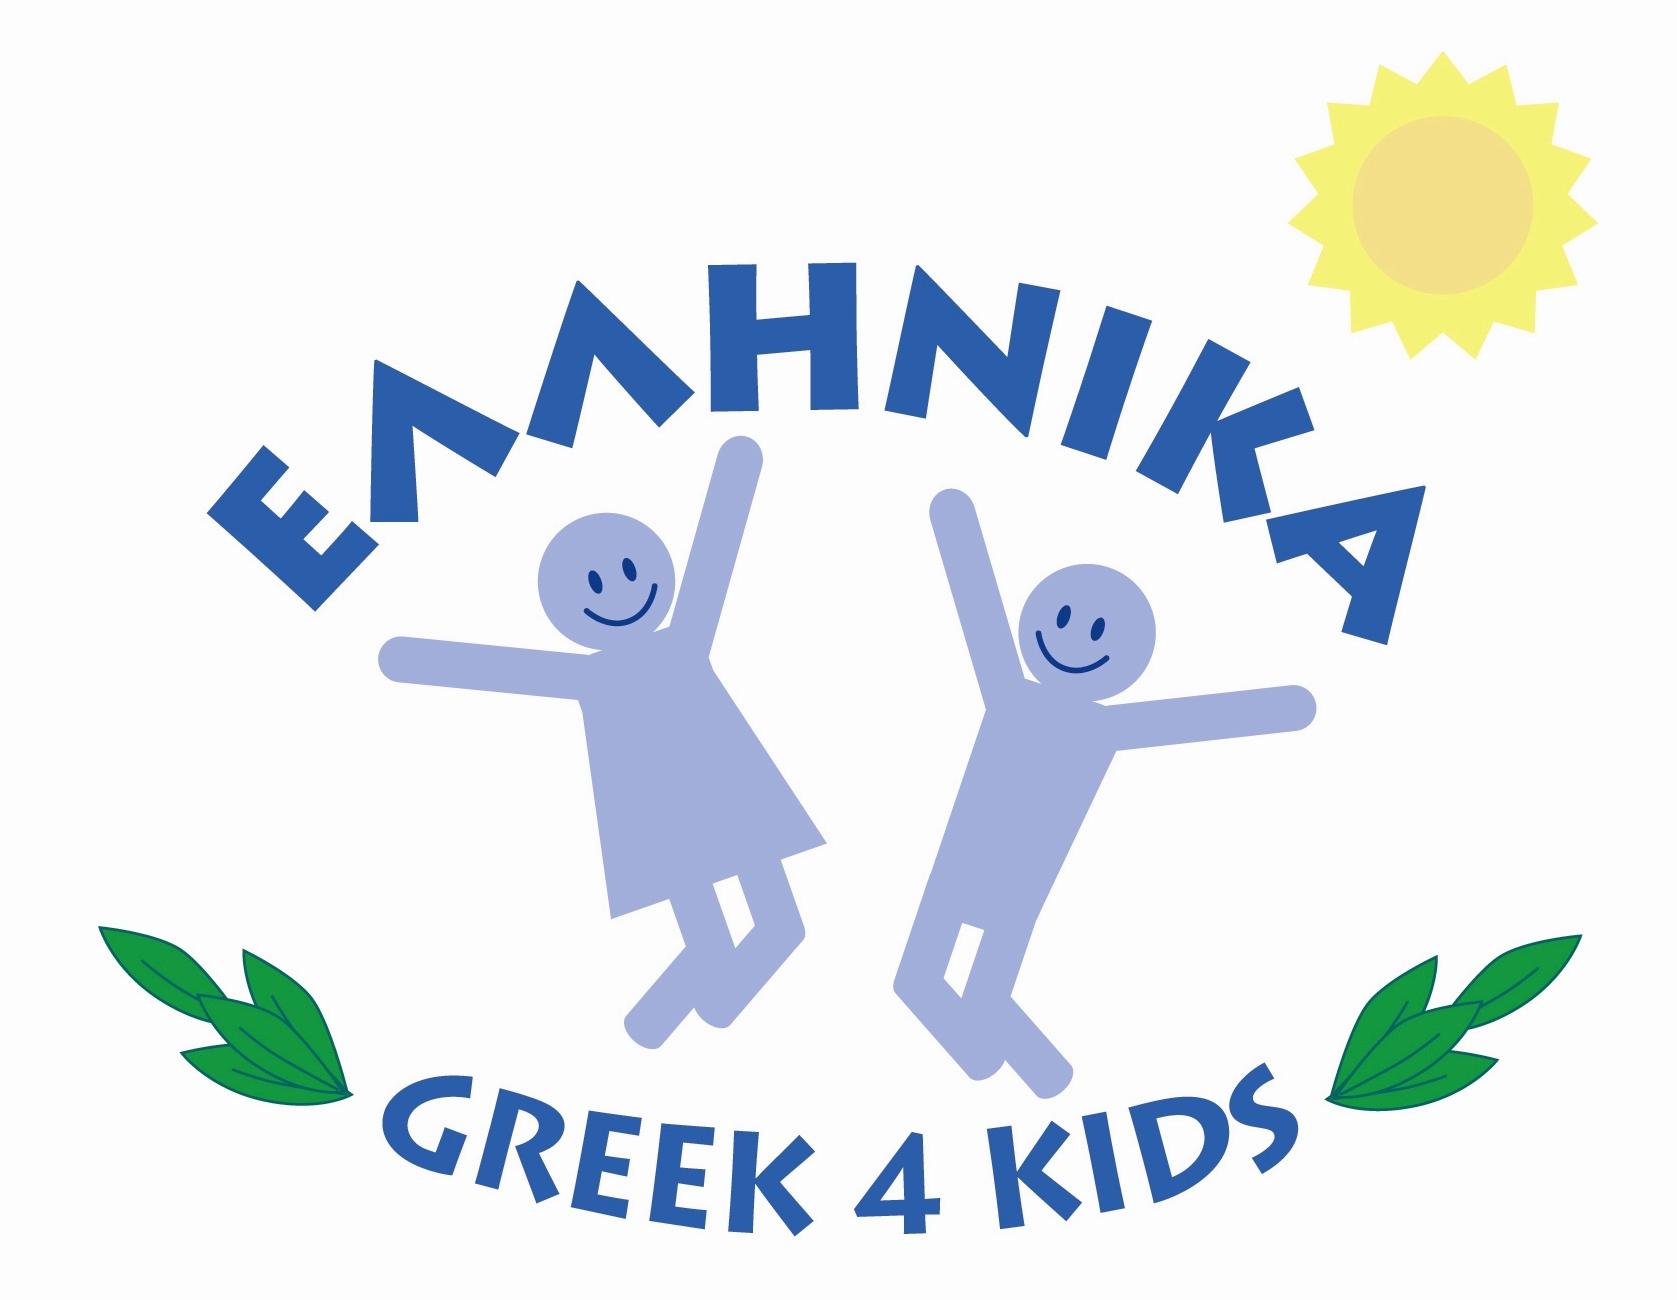 Greek 4 Kids